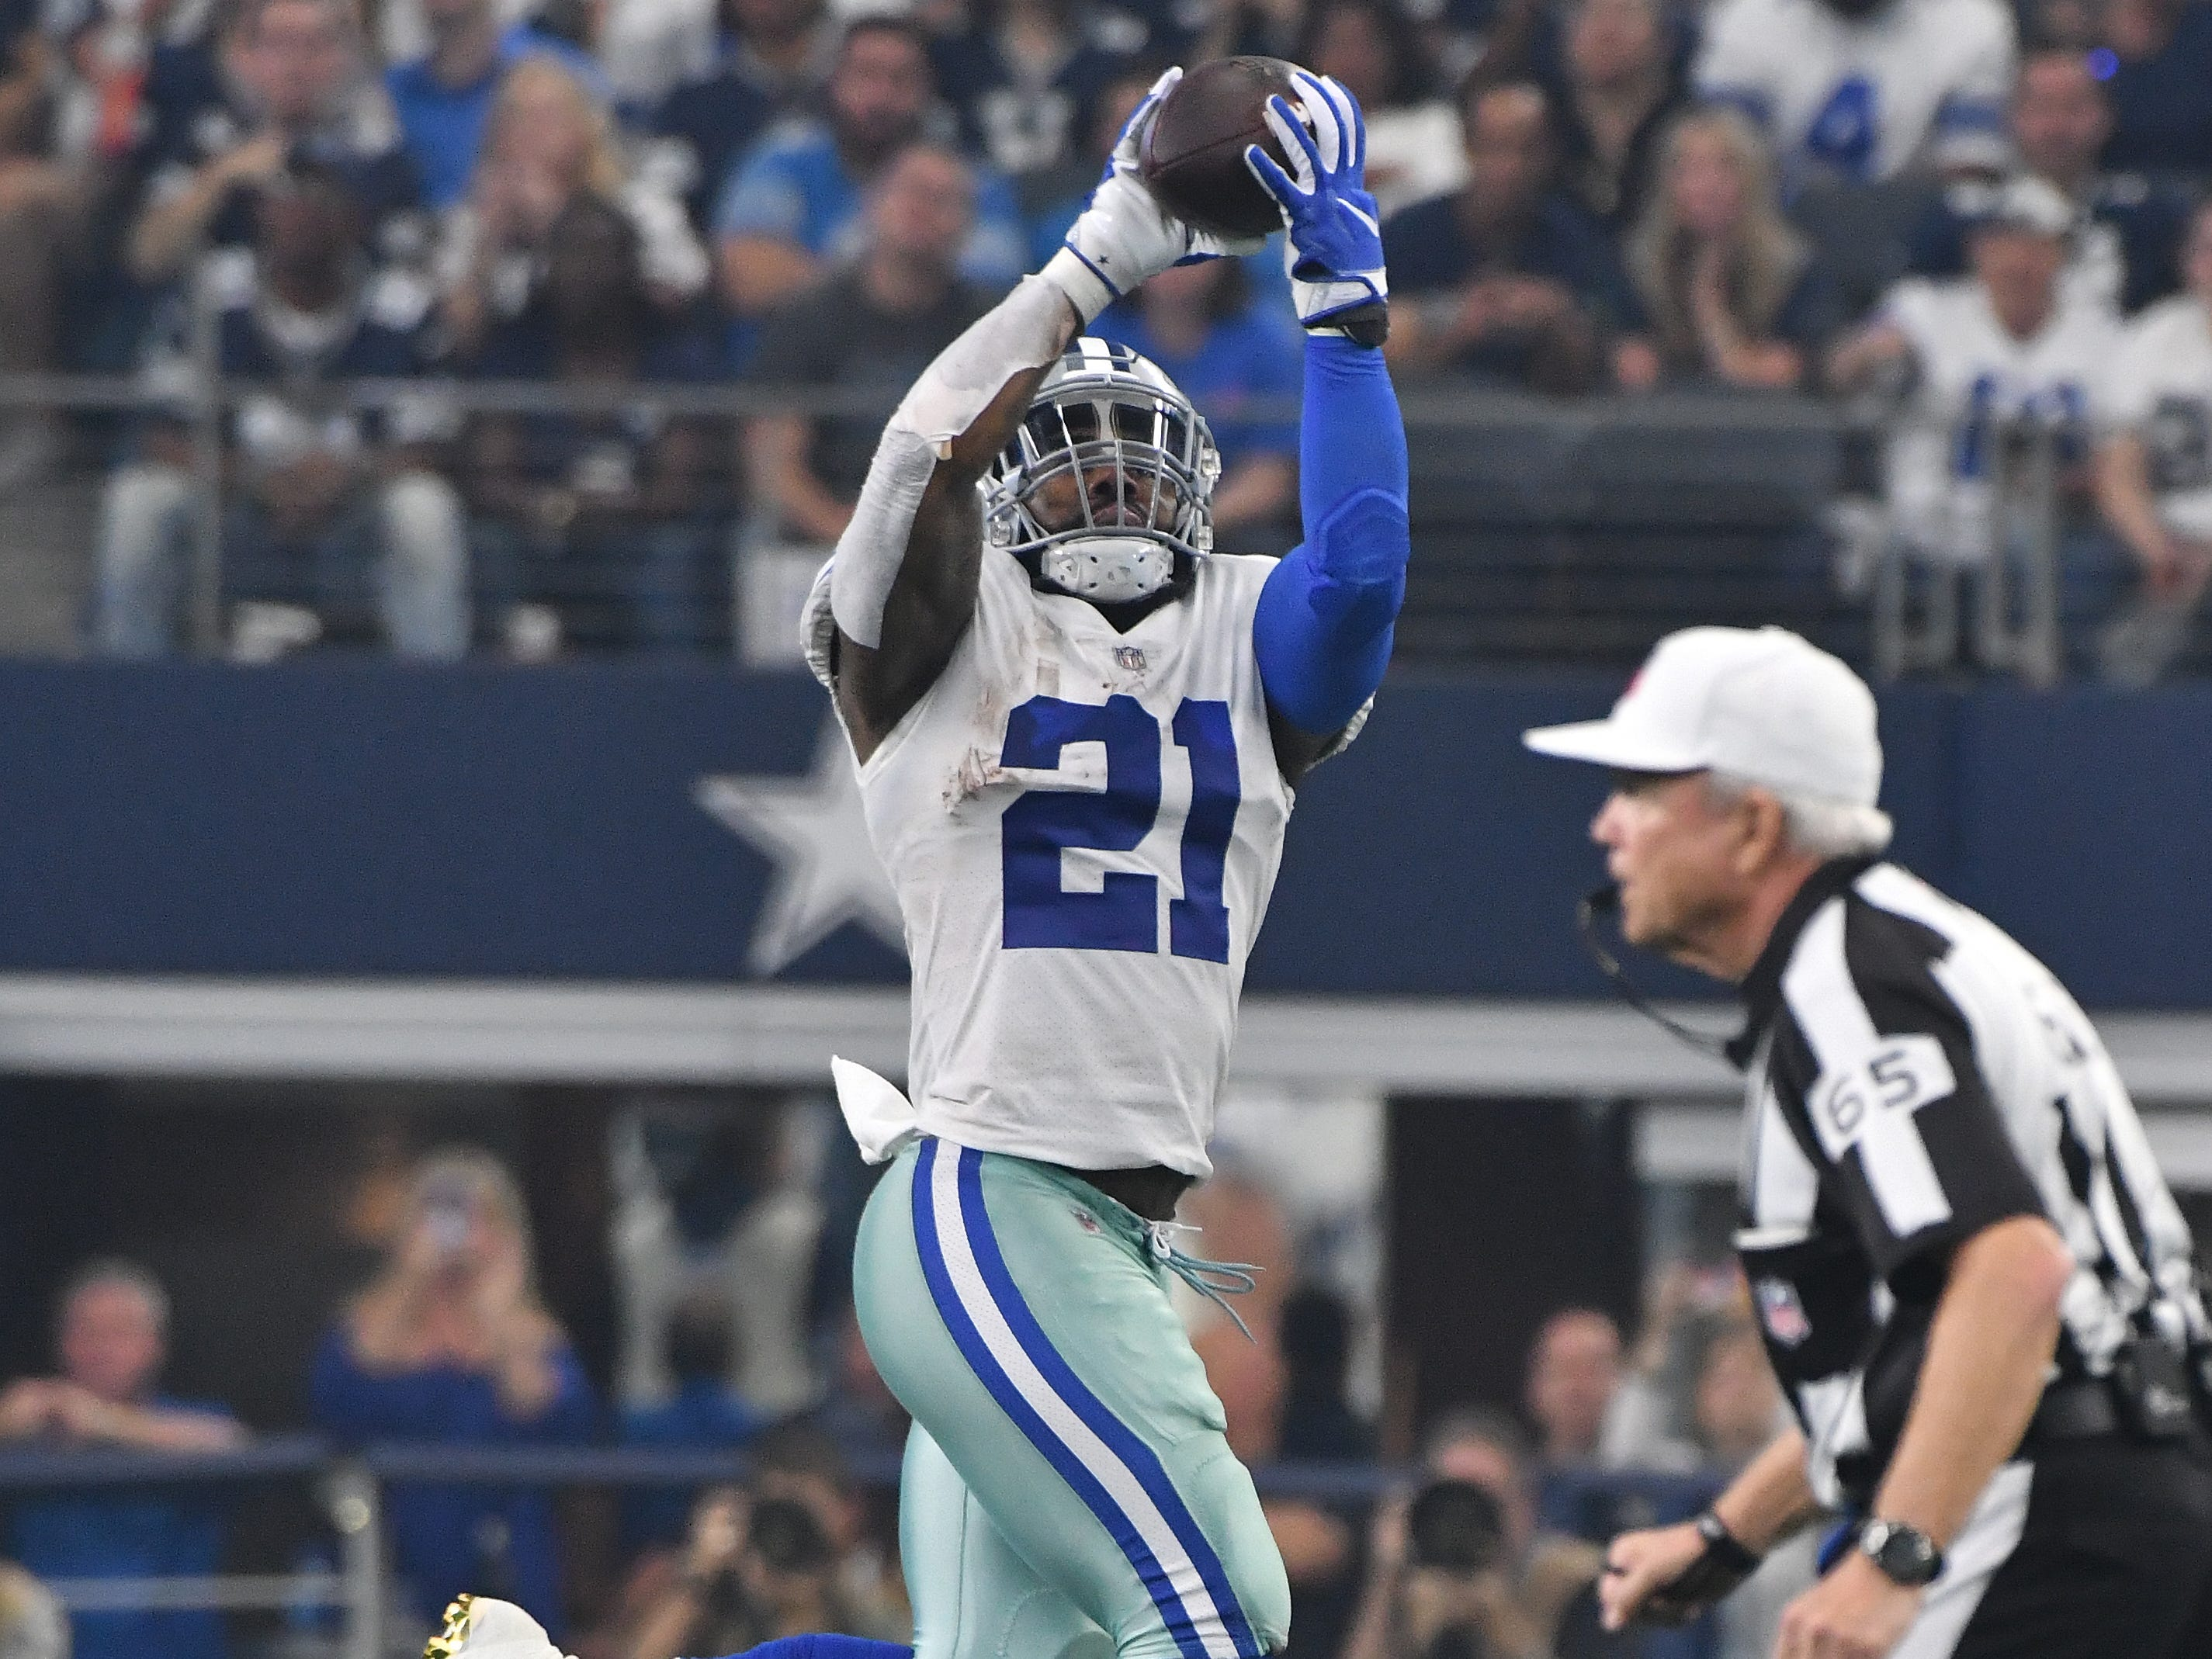 Cowboys' Ezekiel Elliott pulls in a reception and takes all the way into the end zone for the first Dallas touchdown of the day in the second quarter.